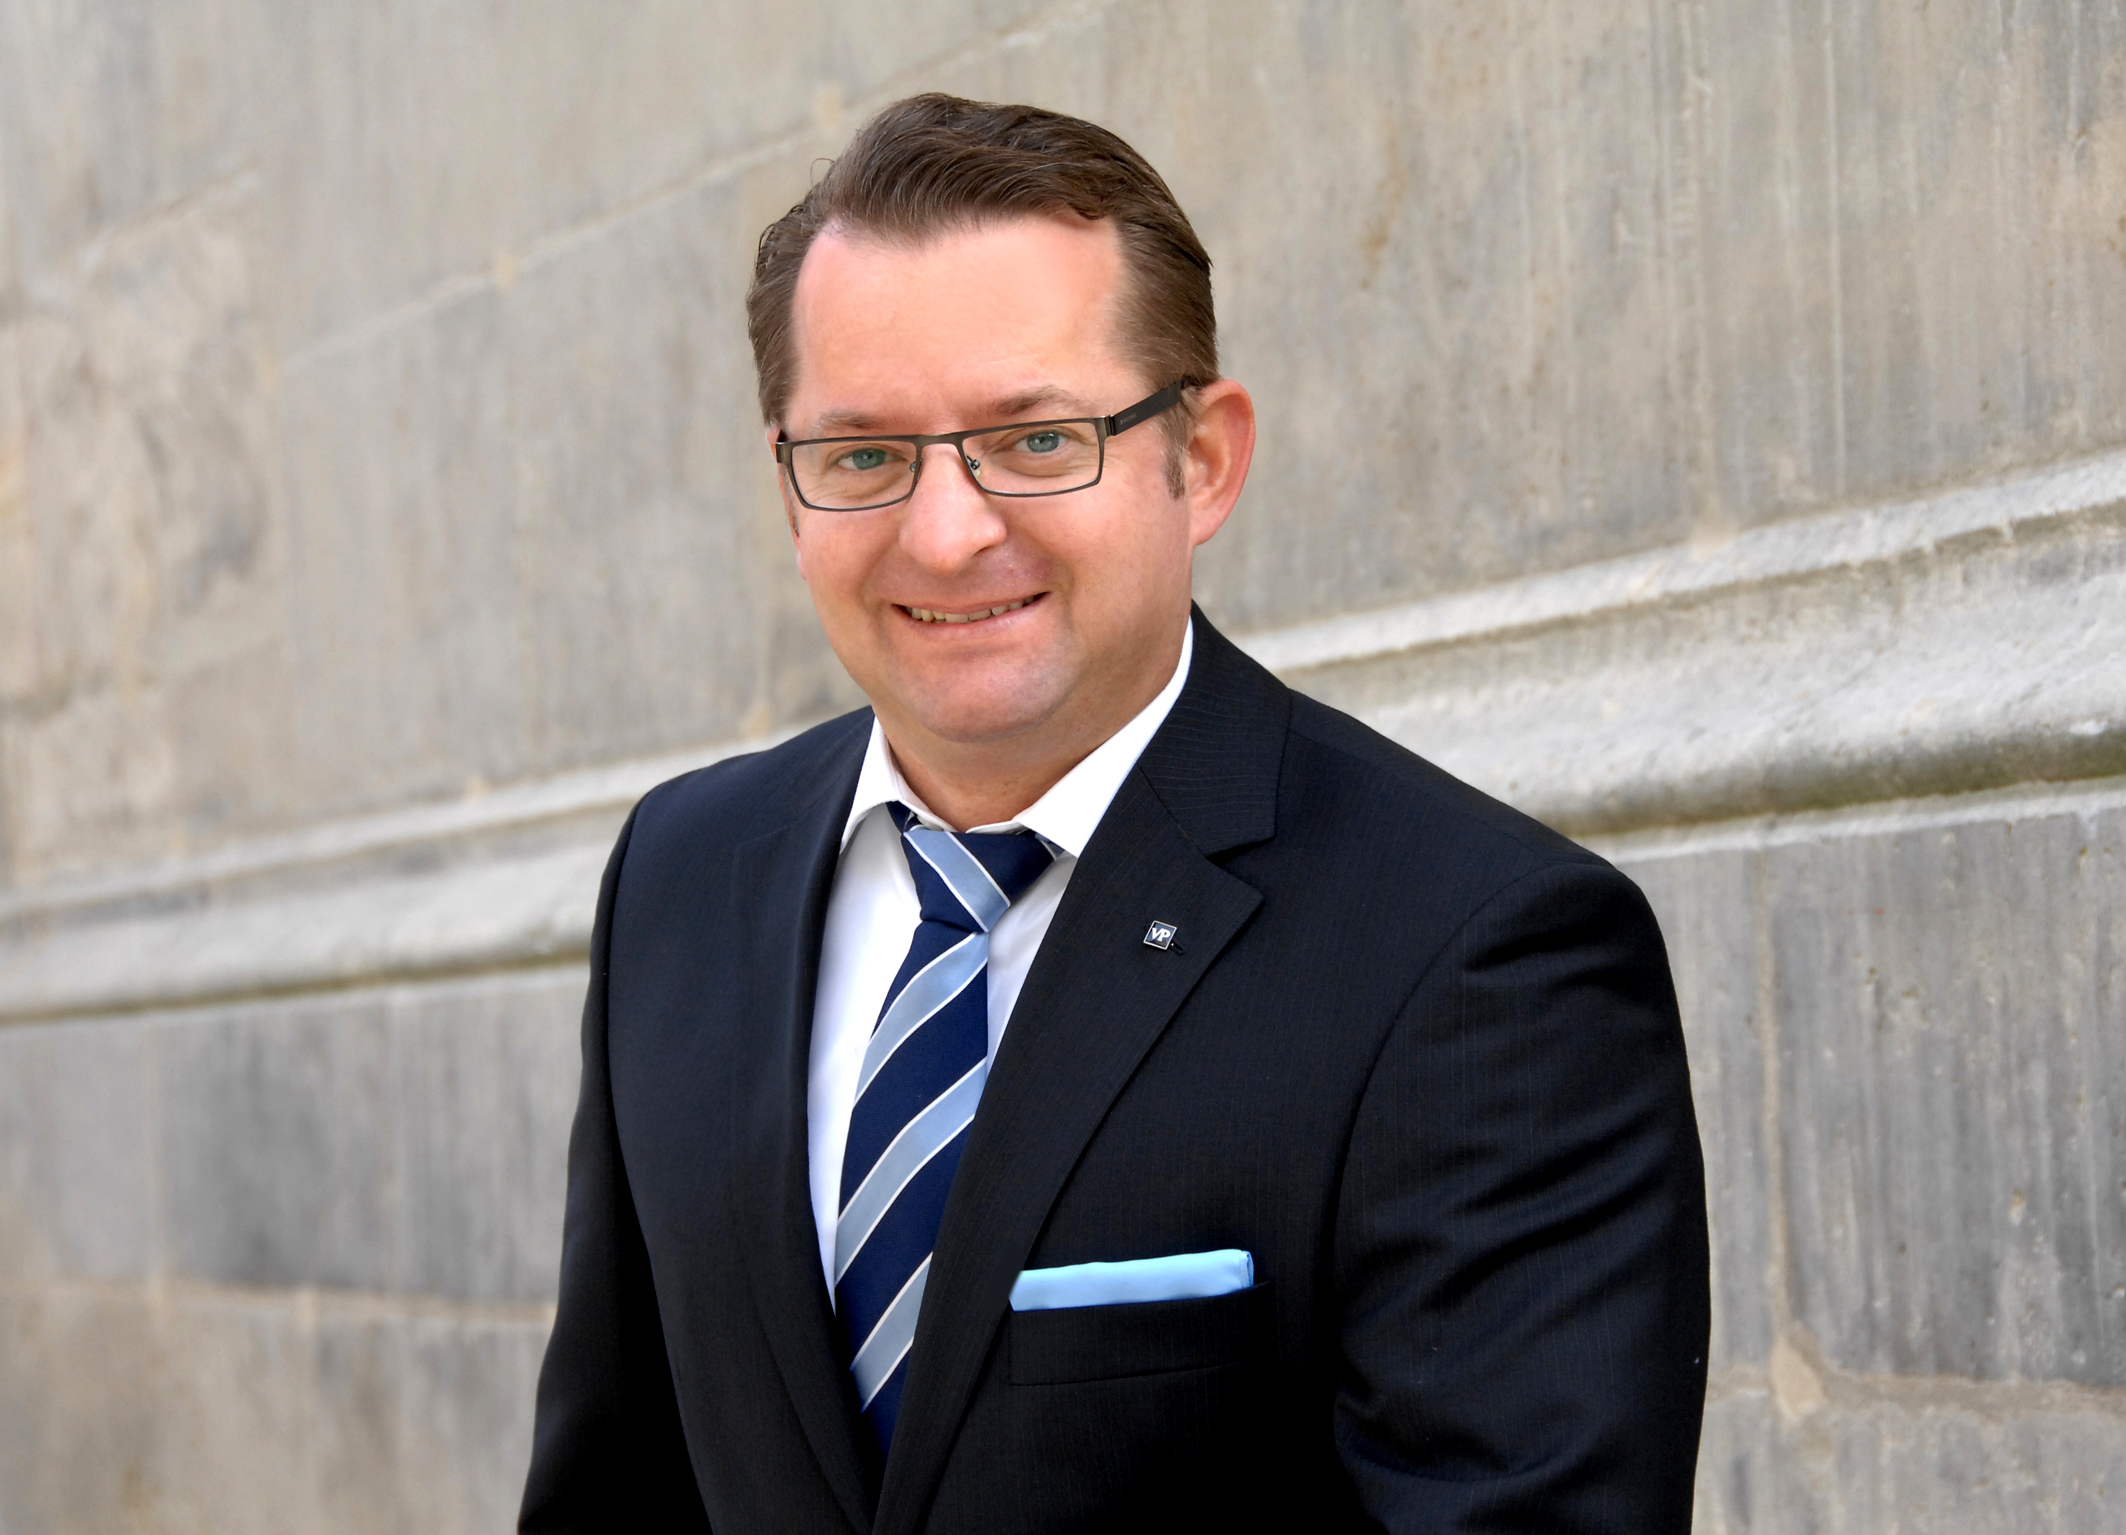 Mark Beyer - VON POLL IMMOBILIEN Bayreuth